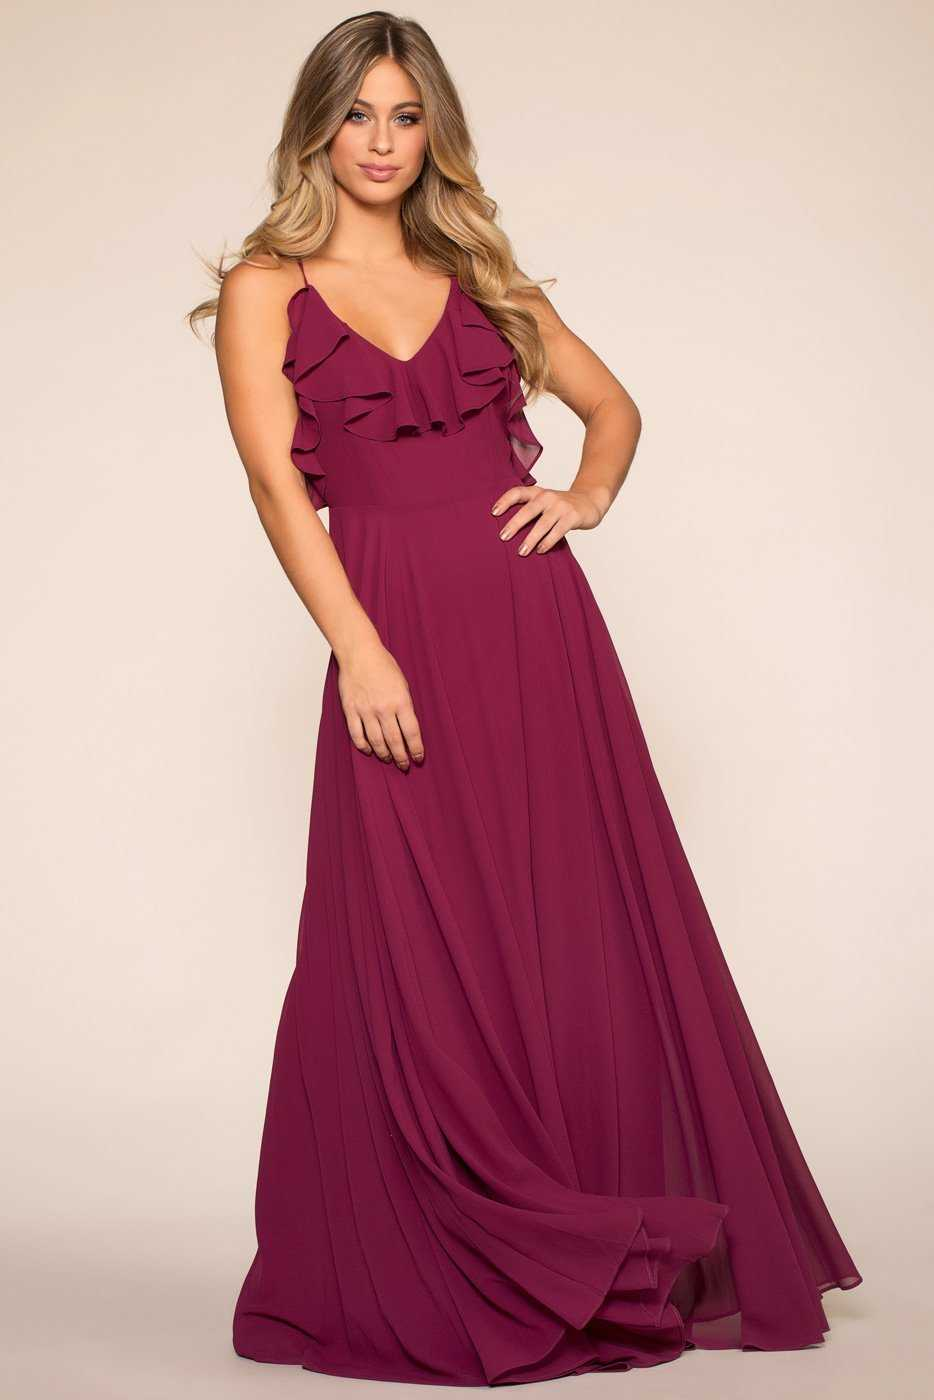 Dresses - Right For You Maxi Dress - Burgundy